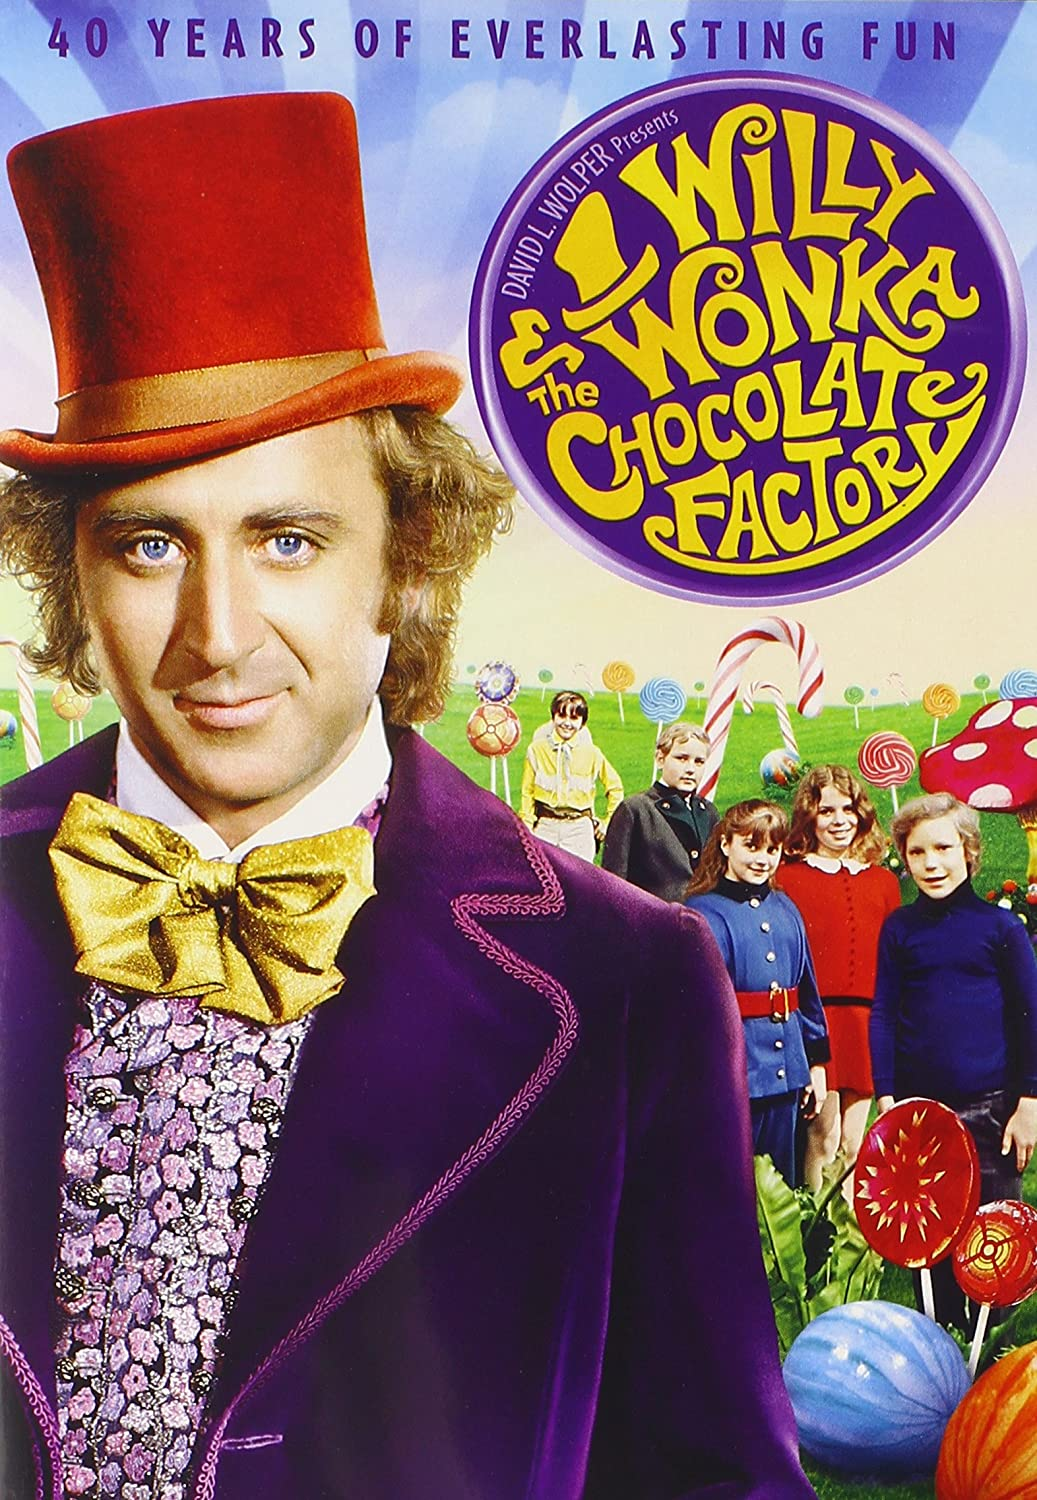 willy wonka and the chocolate factory 40th anniversary edition willy wonka and the chocolate factory 40th anniversary edition import ca gene wilder jack albertson peter ostrum roy kinnear denise nickerson